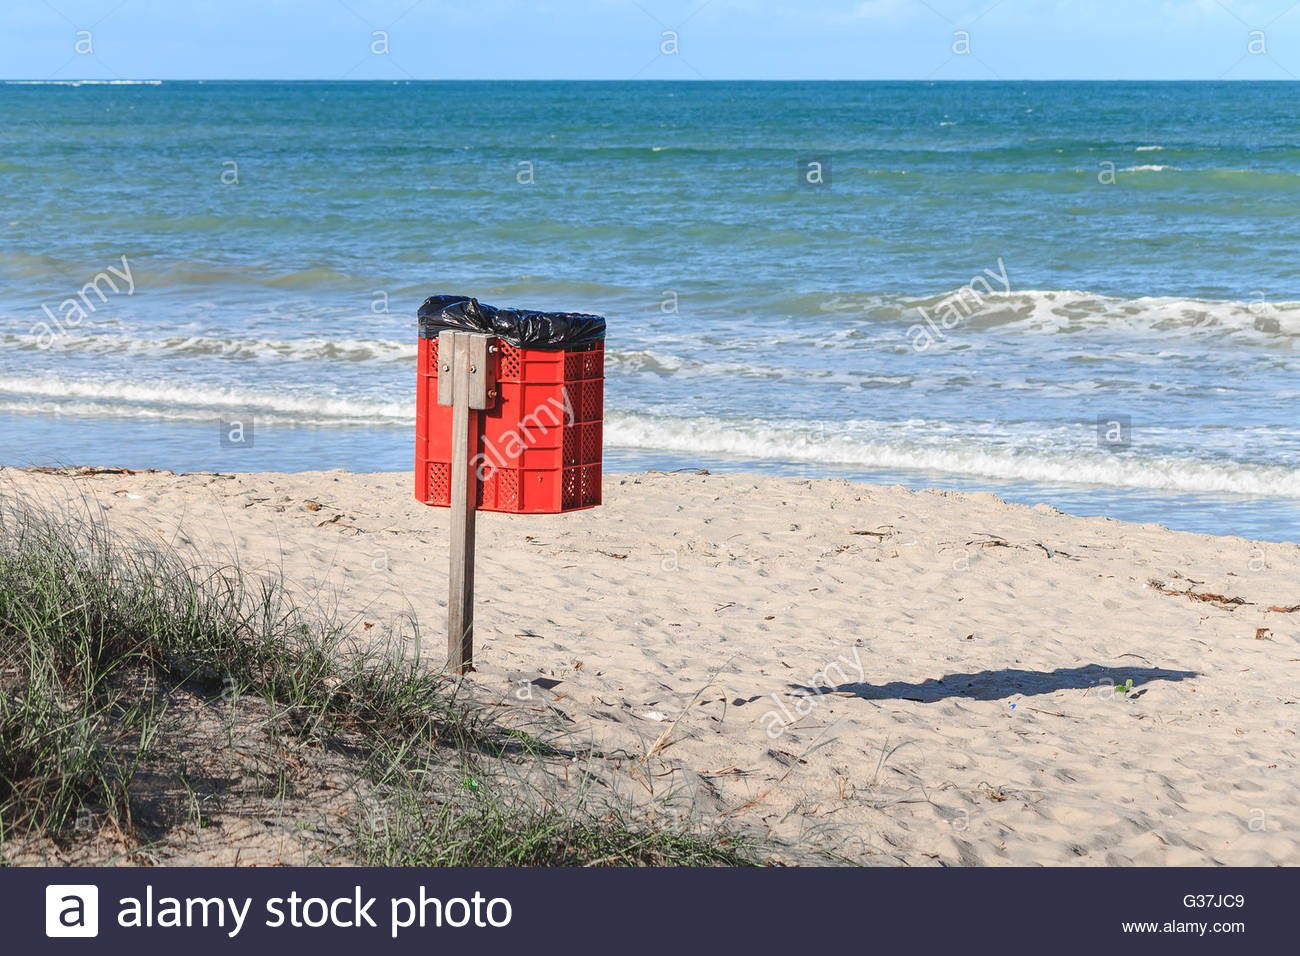 Trash can on the beach sunny day. Concept photo of a clean beach - Stock Image